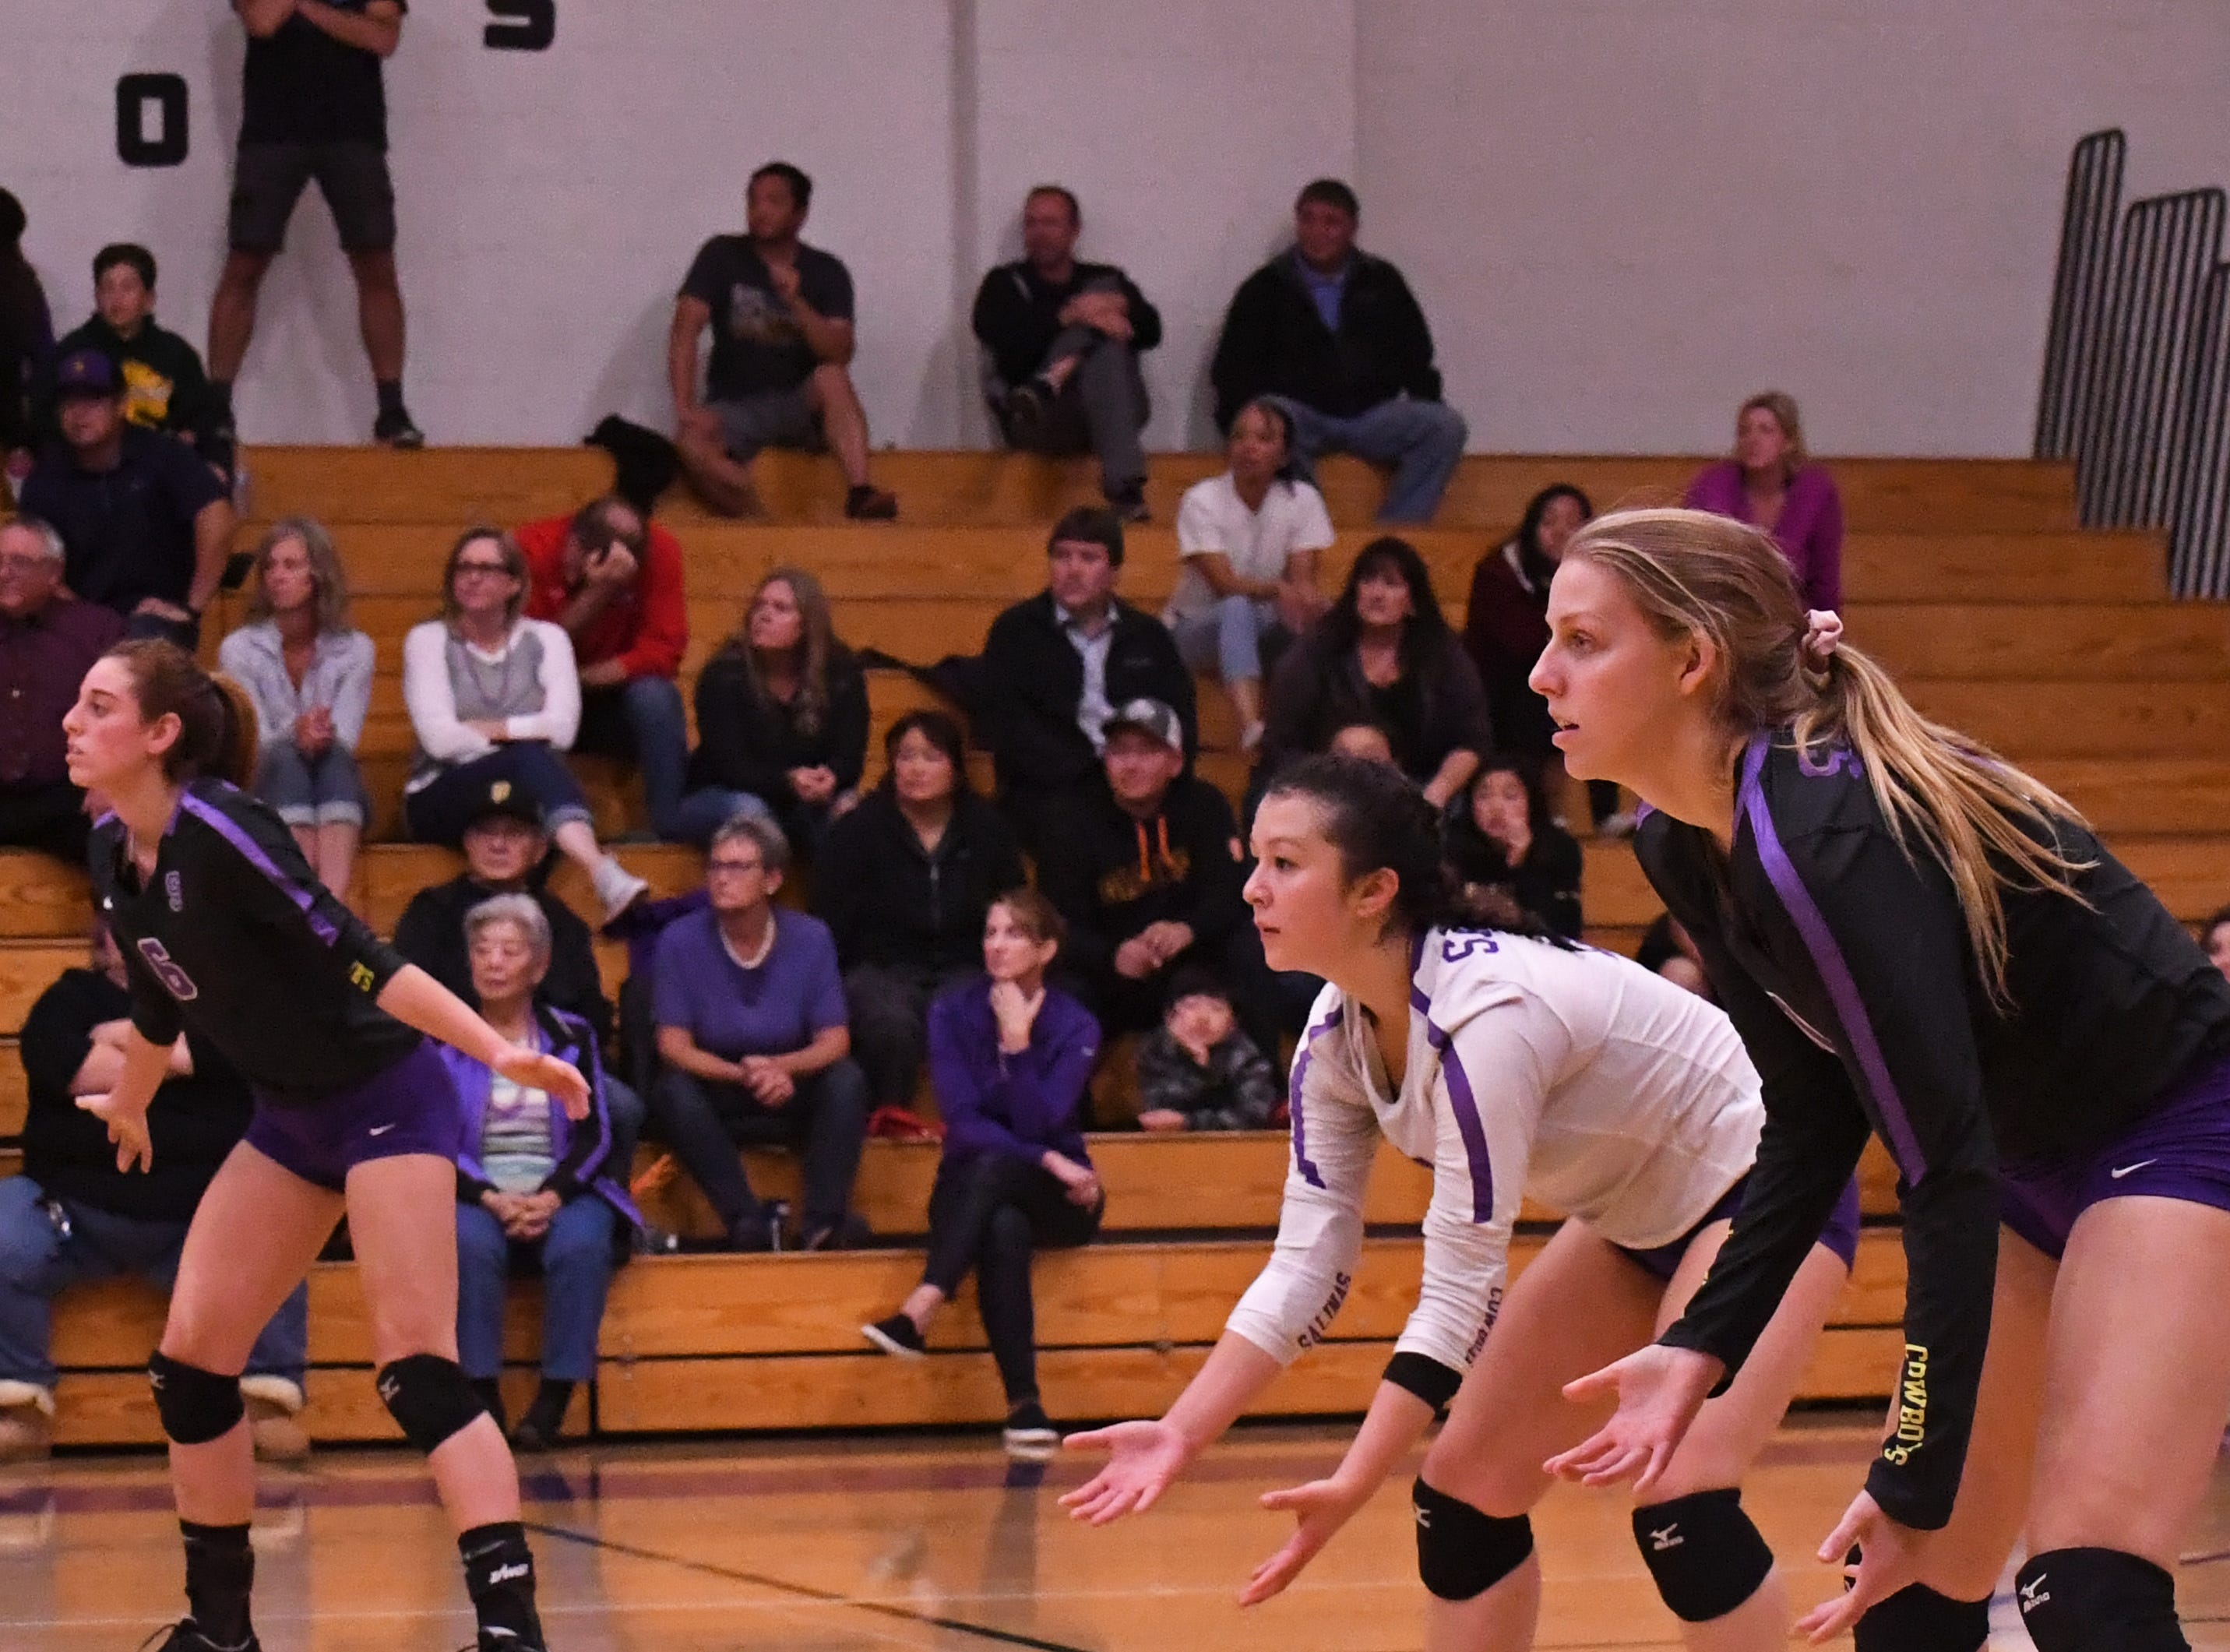 From left: outside hitter Kylee Moore (6), libero Kaila Uota (12) and outside hitter Ashleigh Souza (10) wait for a serve from Los Gatos.